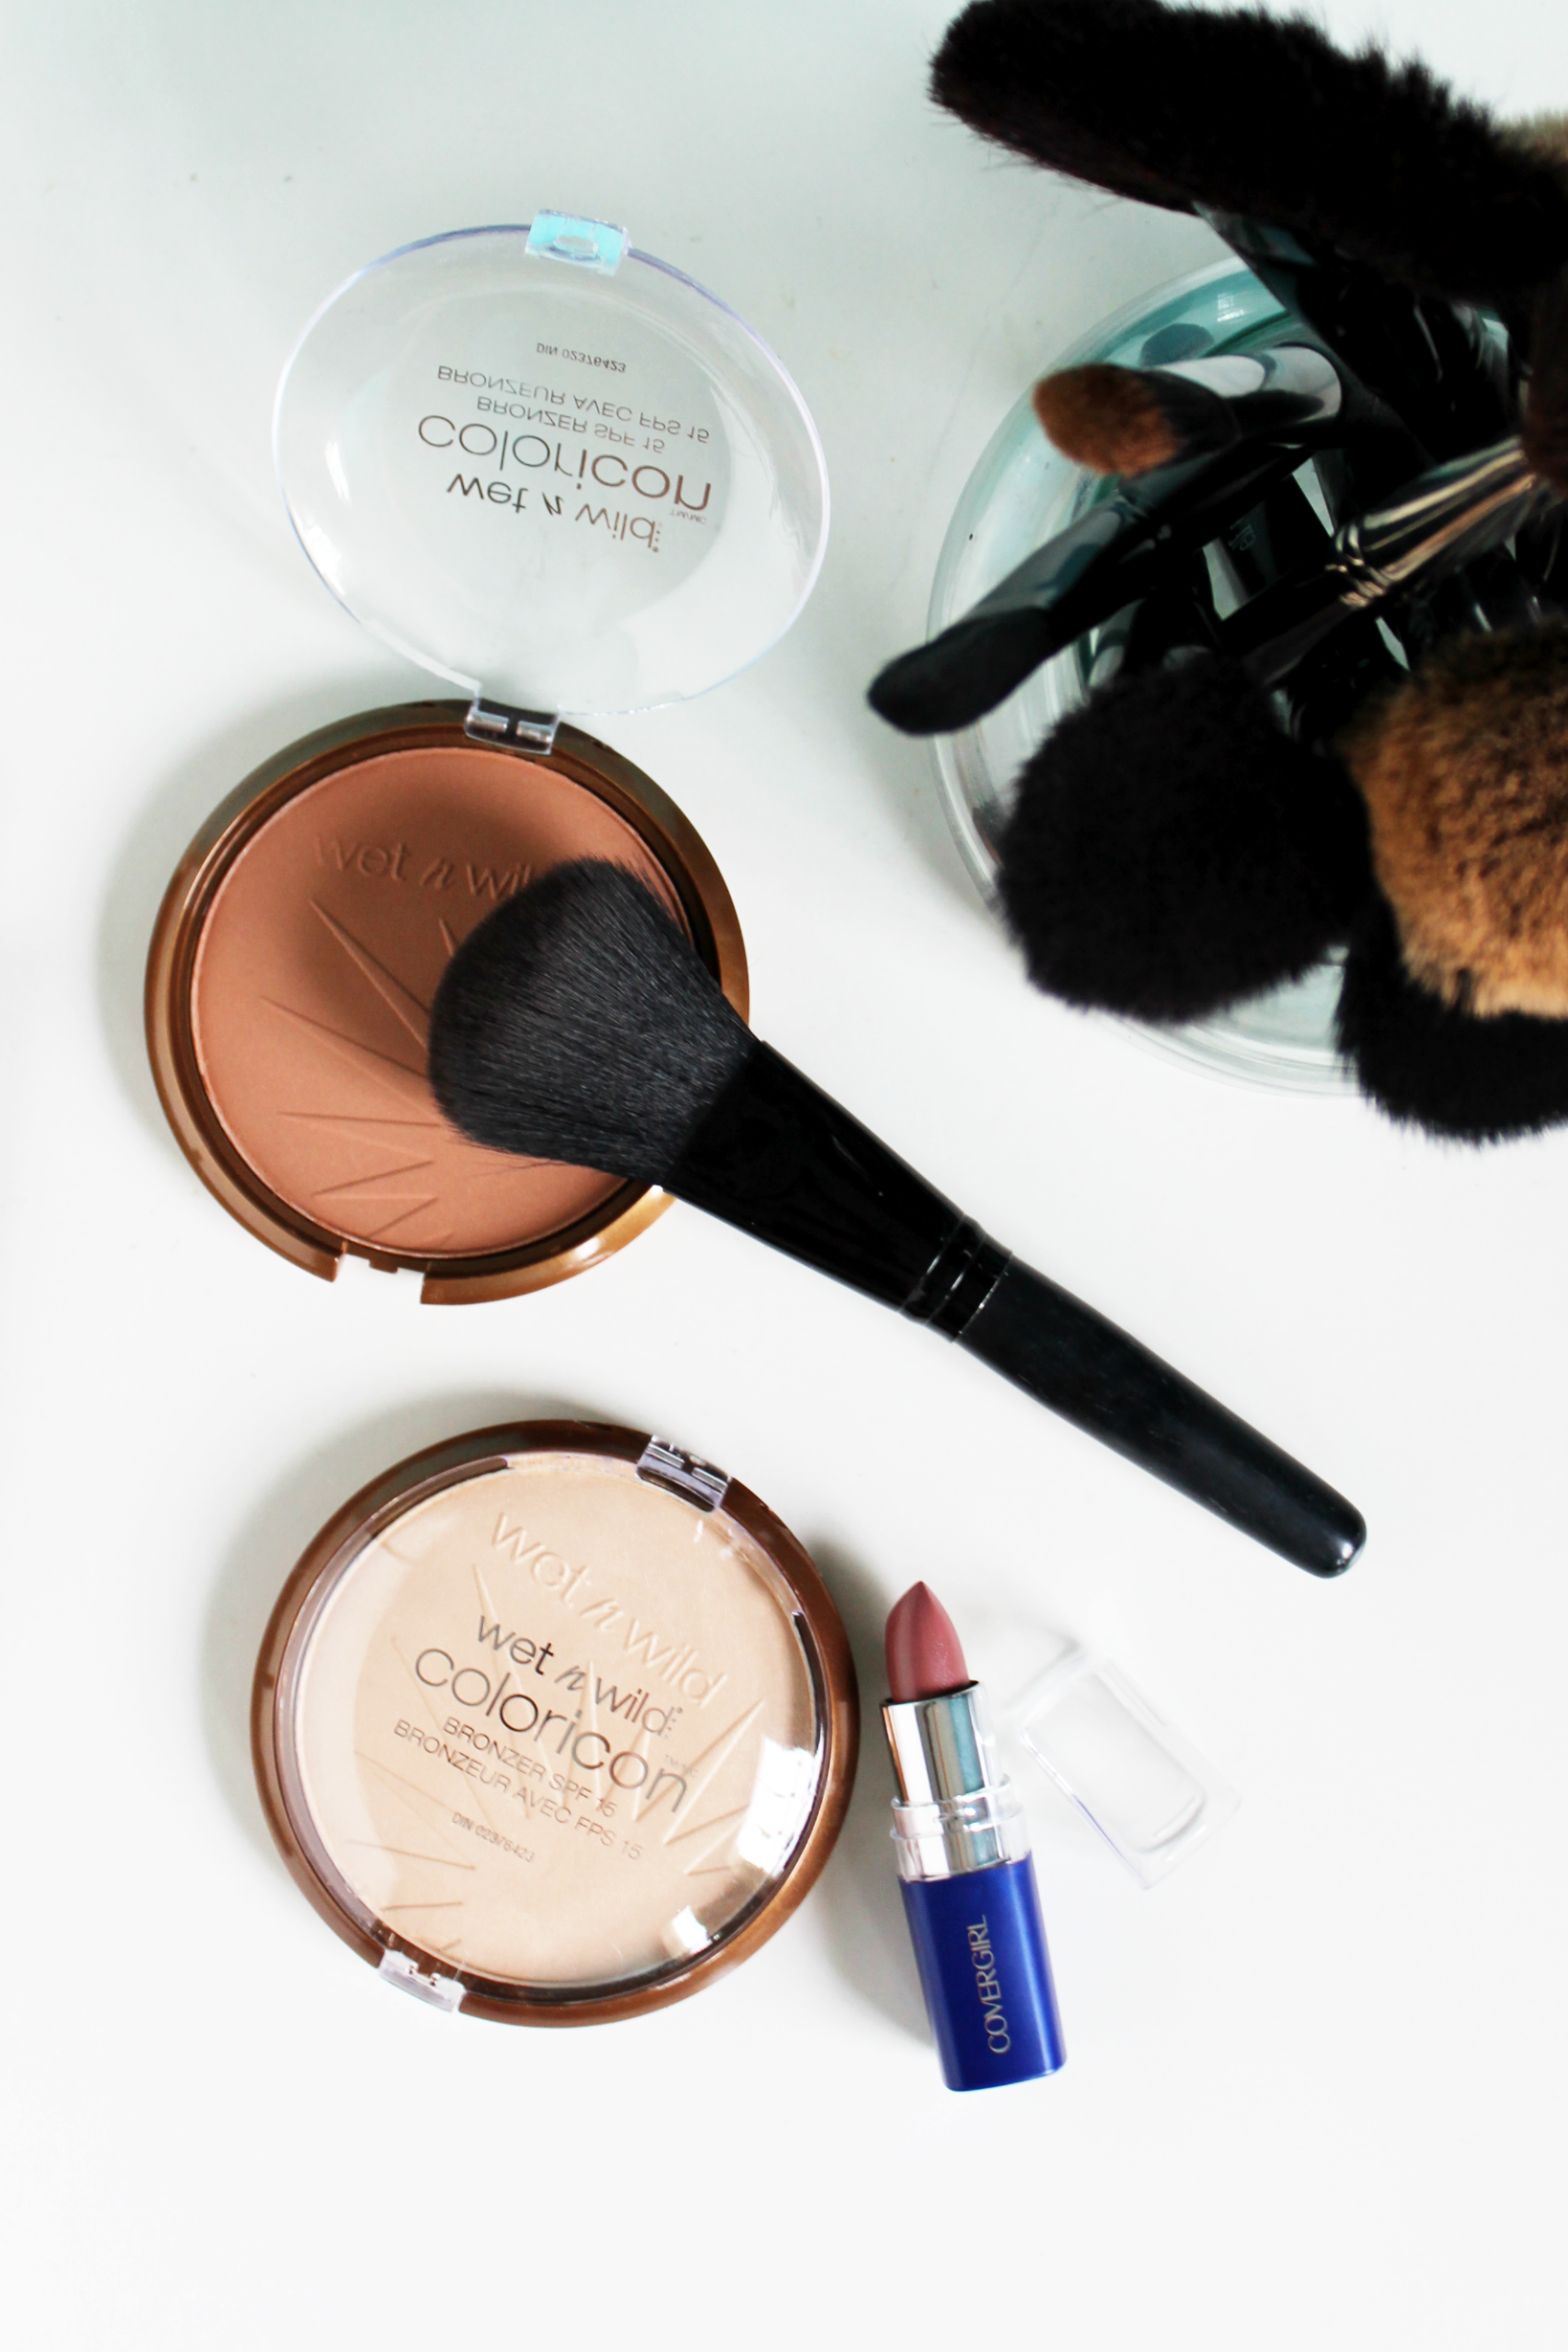 Wer n' Wild Color Icon Bronzer